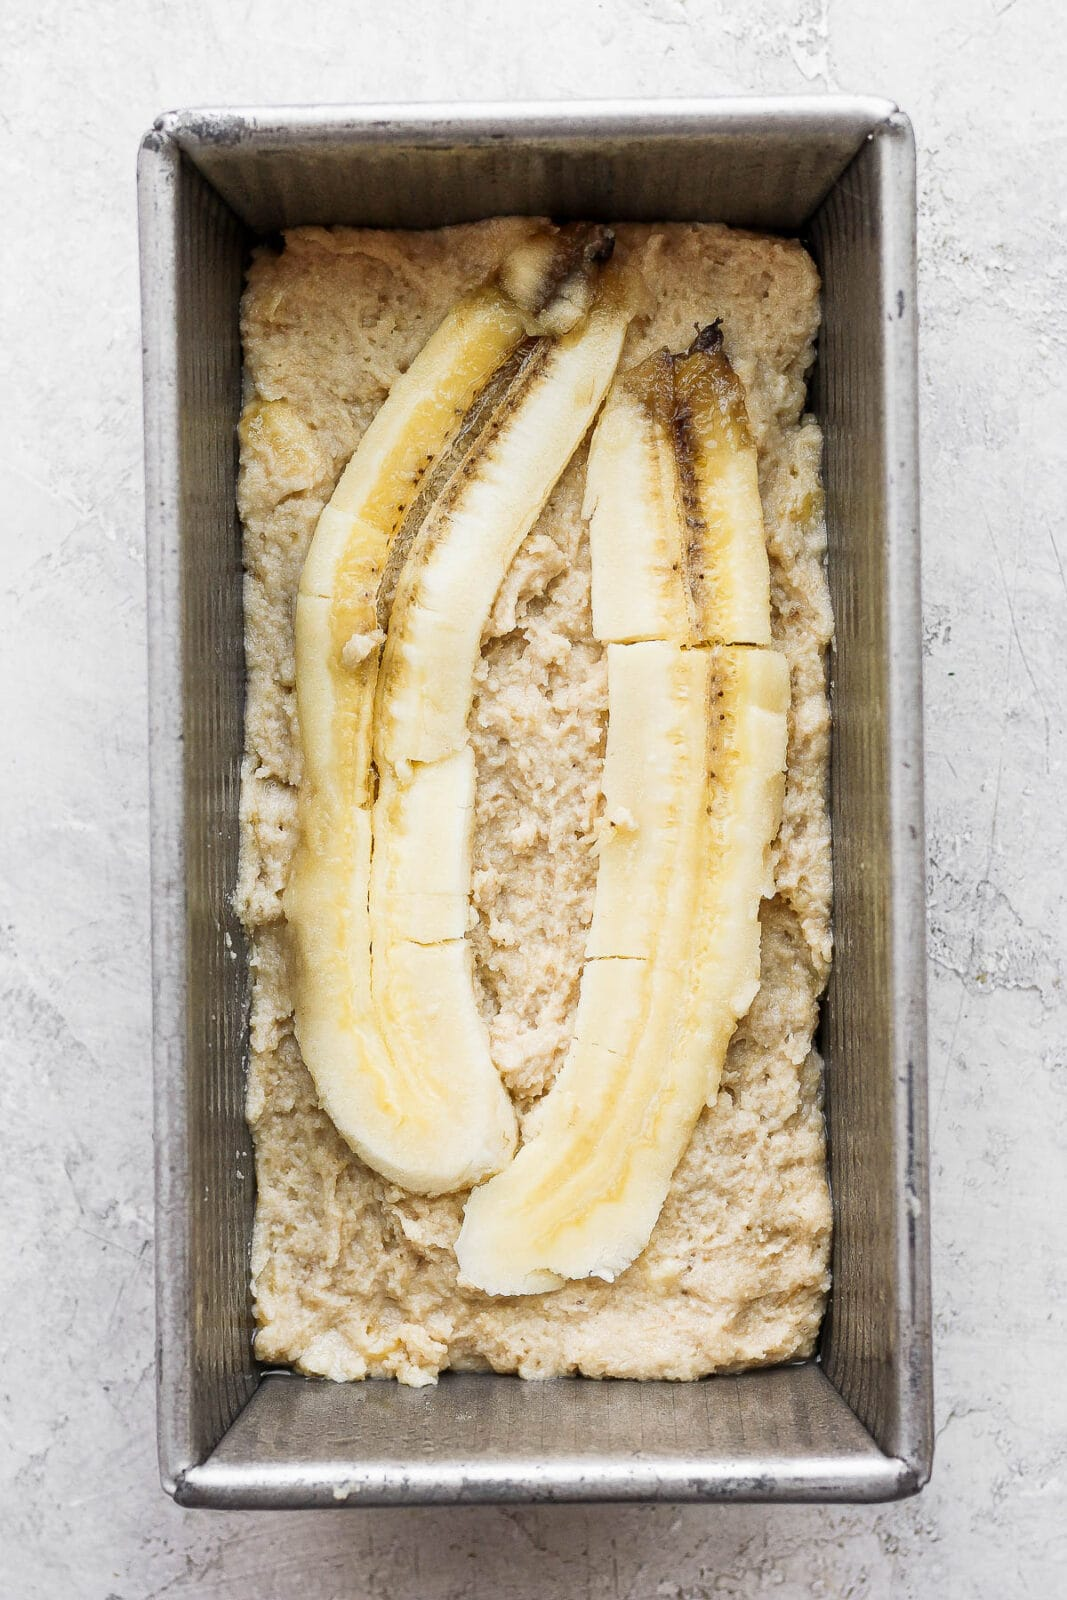 Paleo banana bread batter with a sliced banana on top for garnish in a loaf pan.